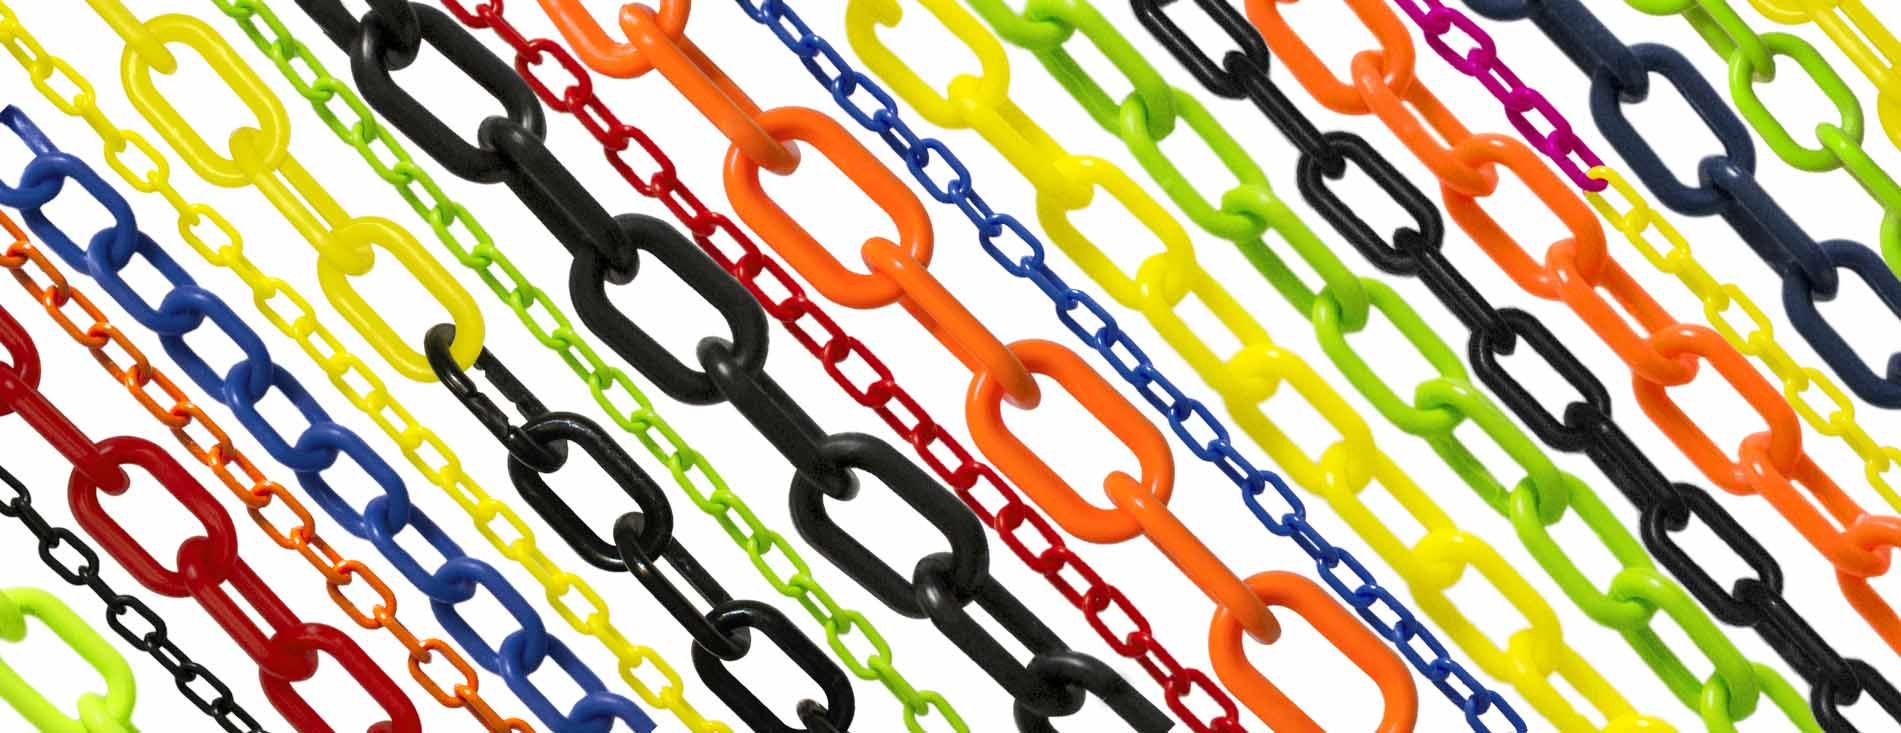 Plastic Chain for Indoor and Outdoor Crowd Management